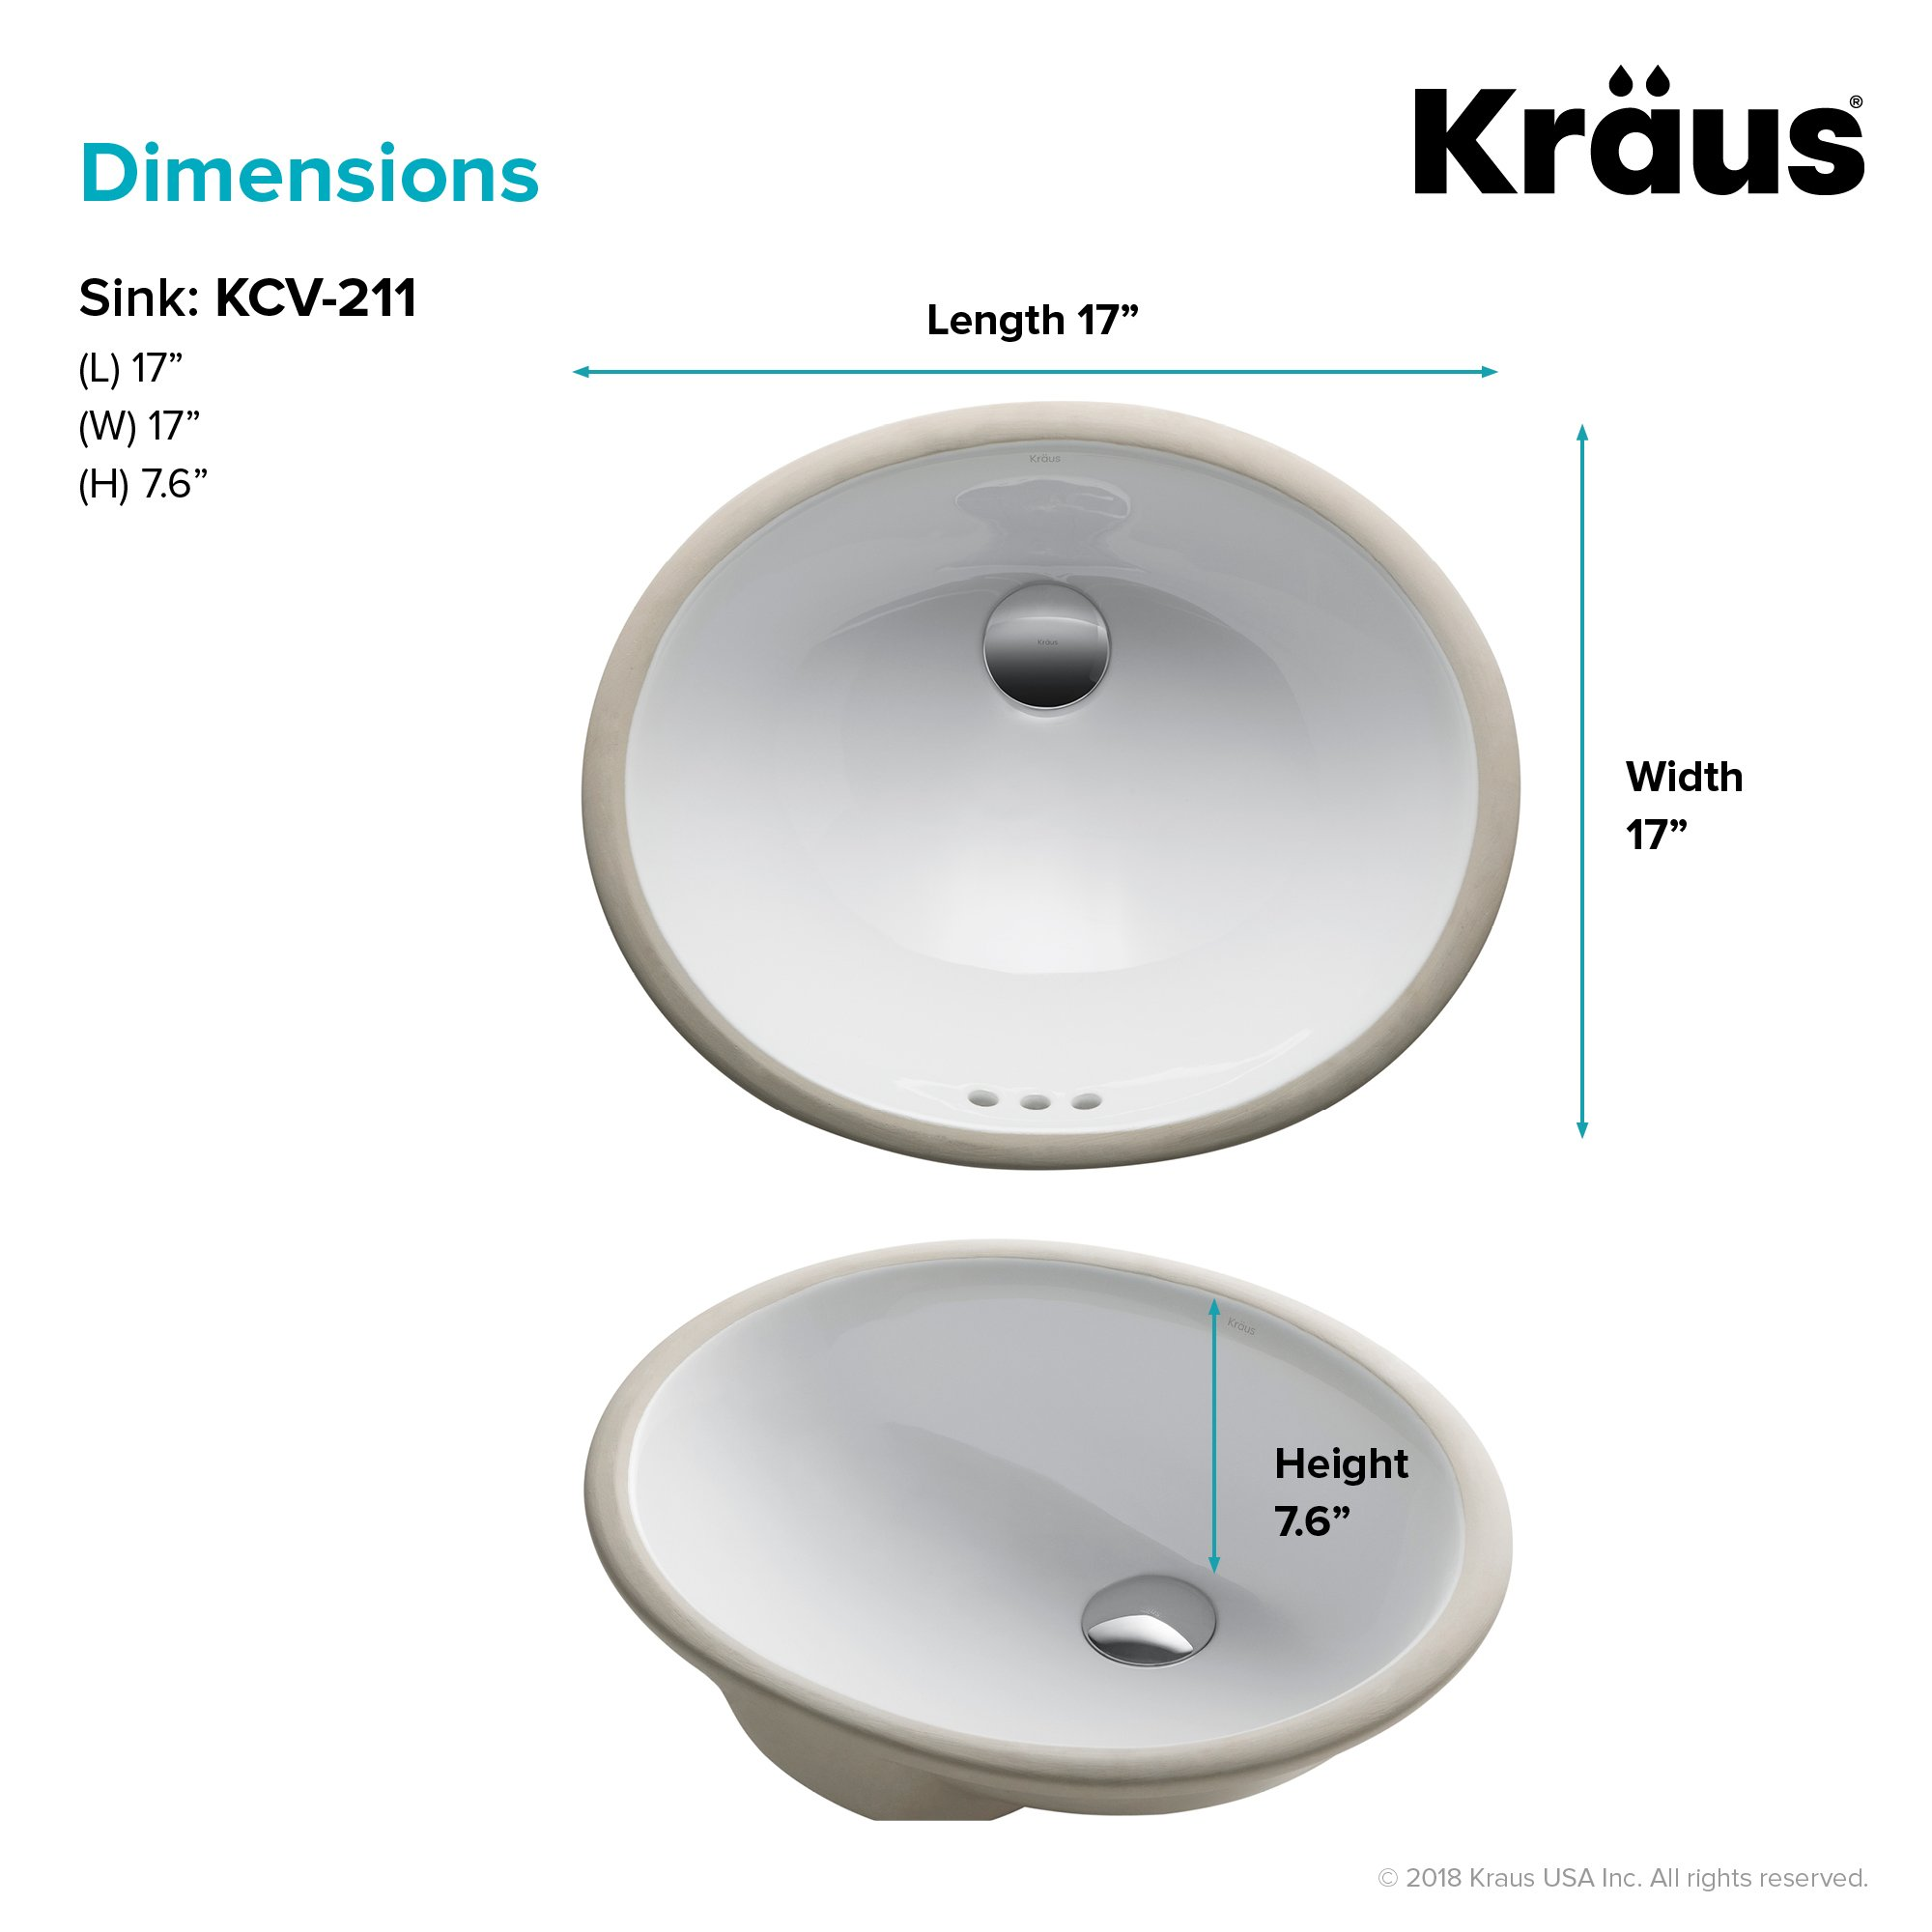 KRAUS Elavo 17 Inch Oval Undermount Porcelain Ceramic Bathroom Sink in White with Overflow, KCU-211 by Kraus (Image #5)